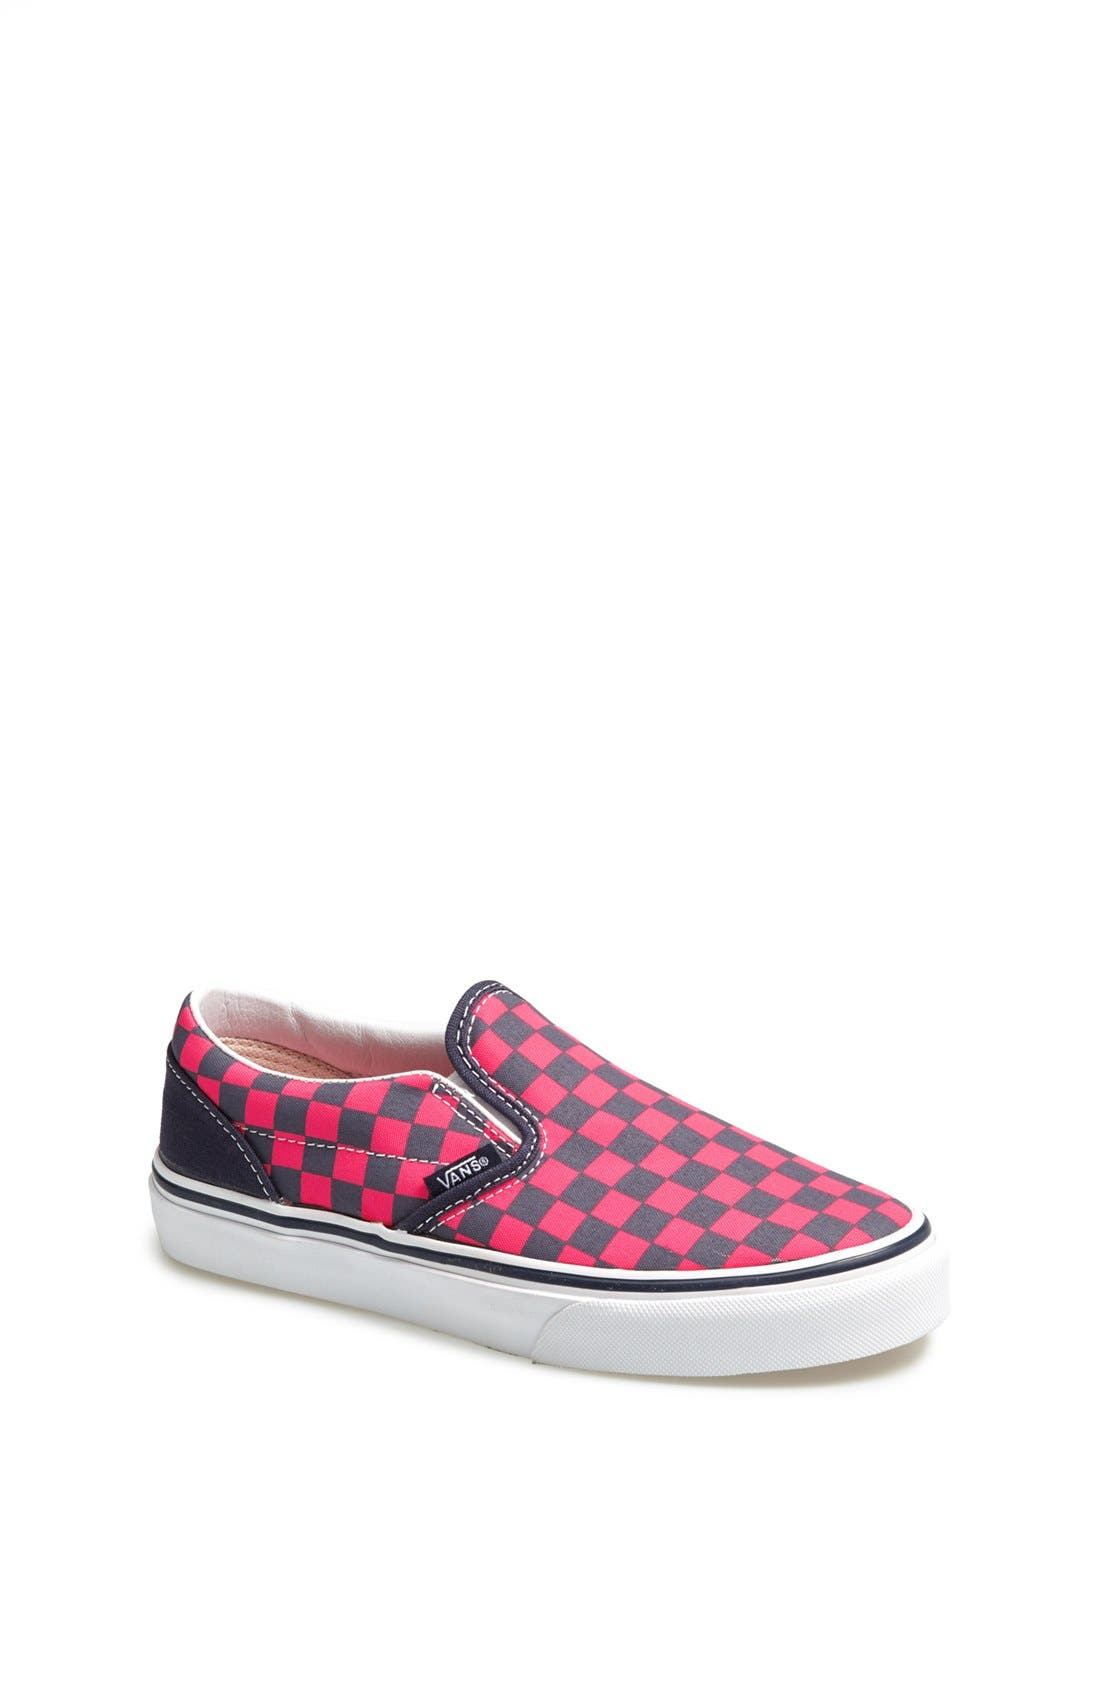 Main Image - VANS CLASSIC SLIP ON CHECKERBOARD SNEAKER